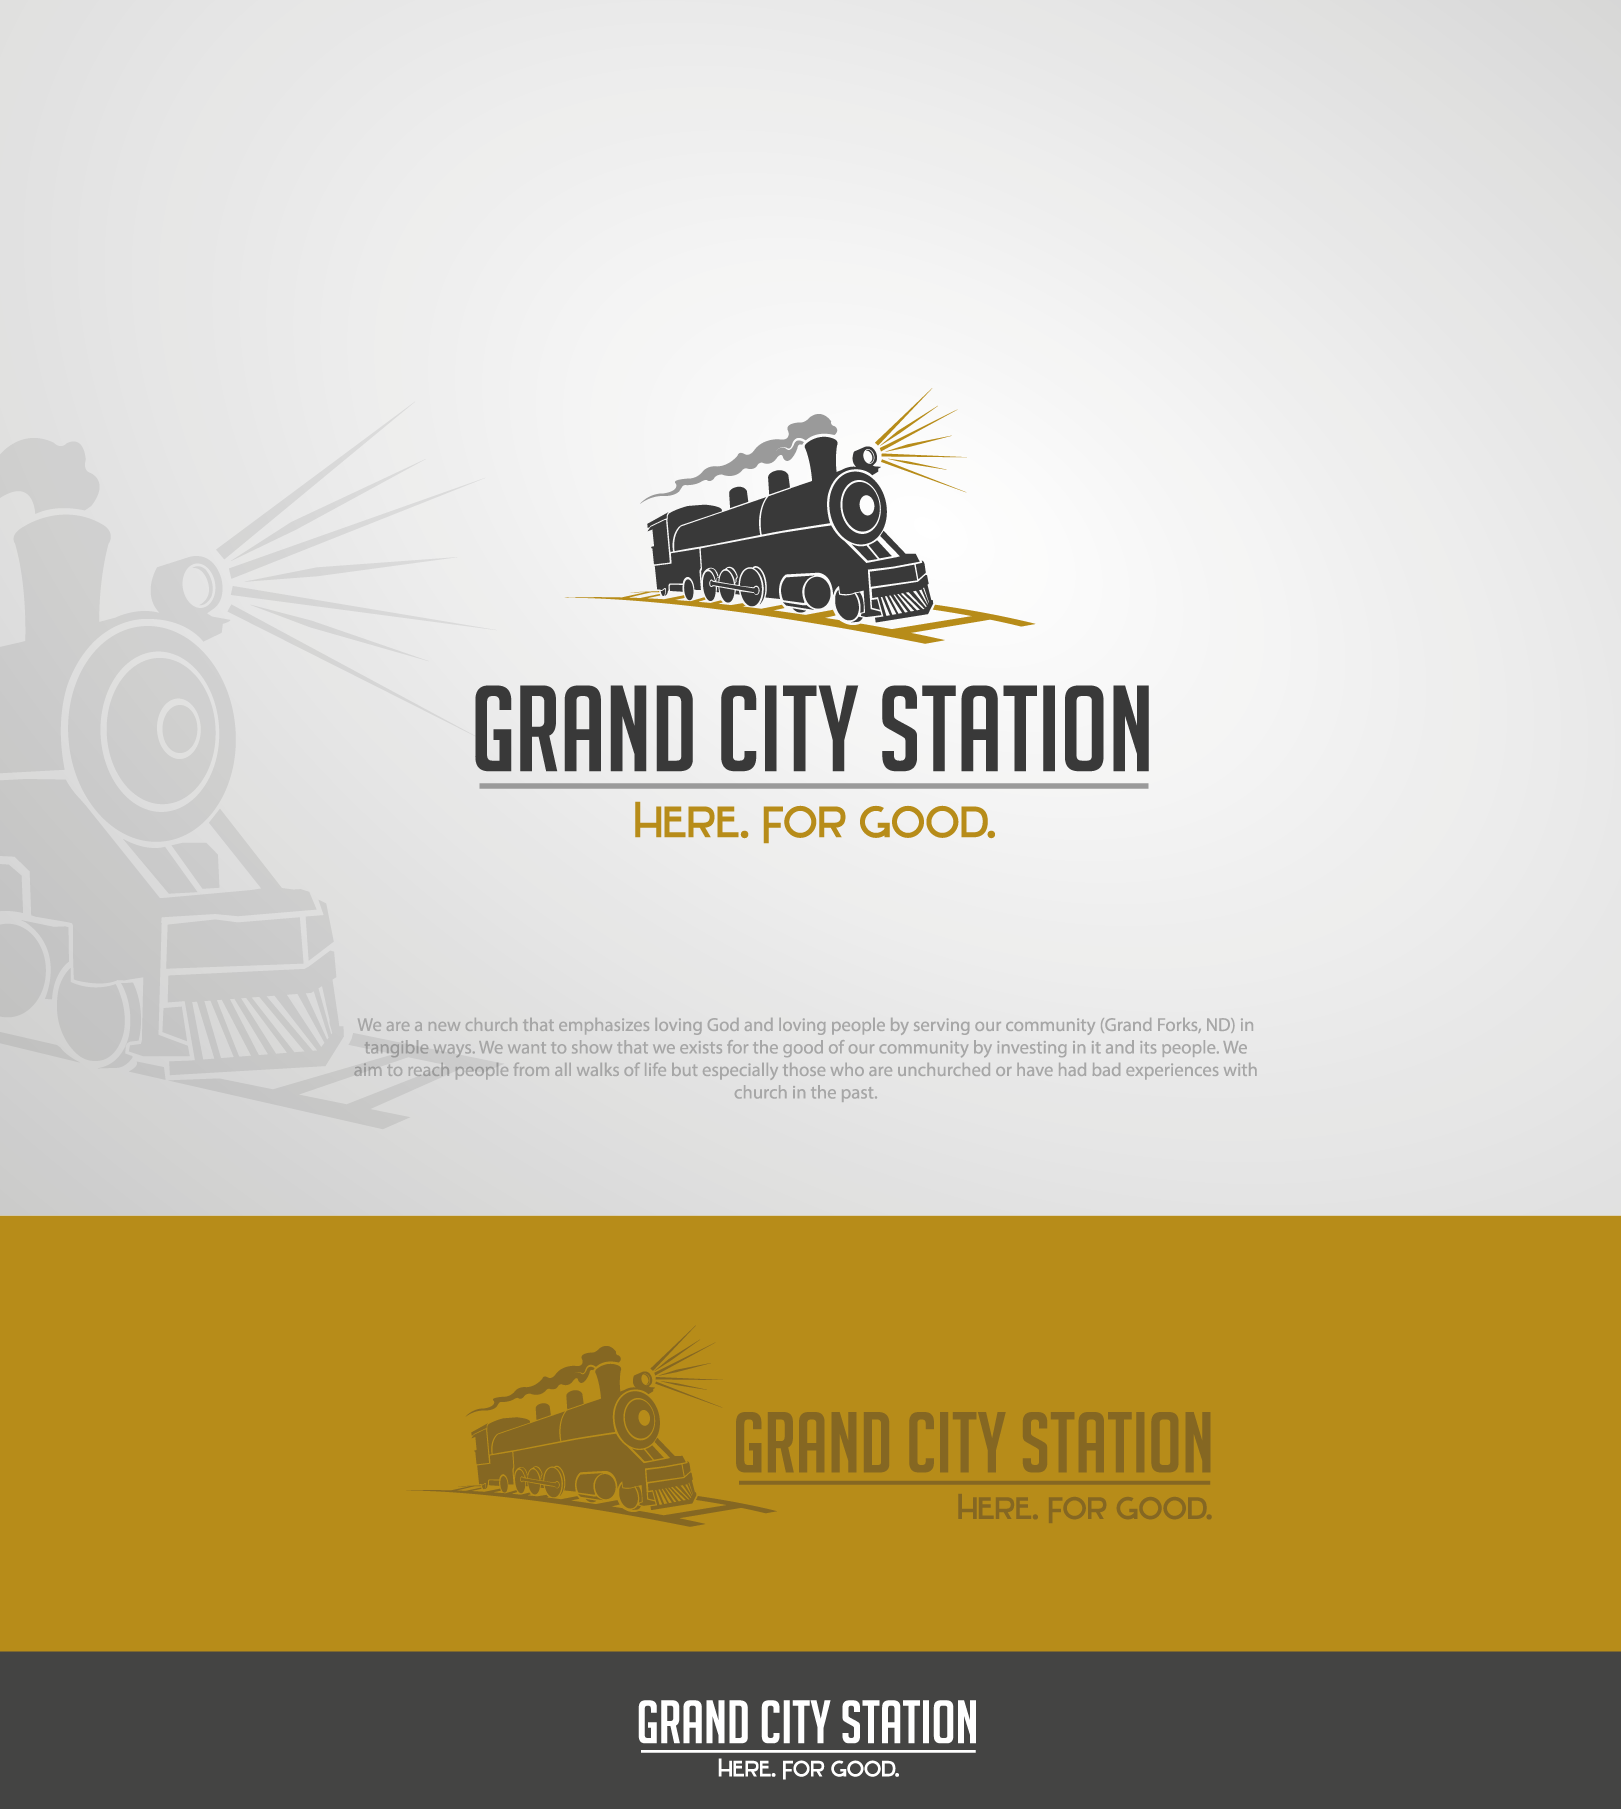 Grand City Station needs a logo with a modern twist on classic trains